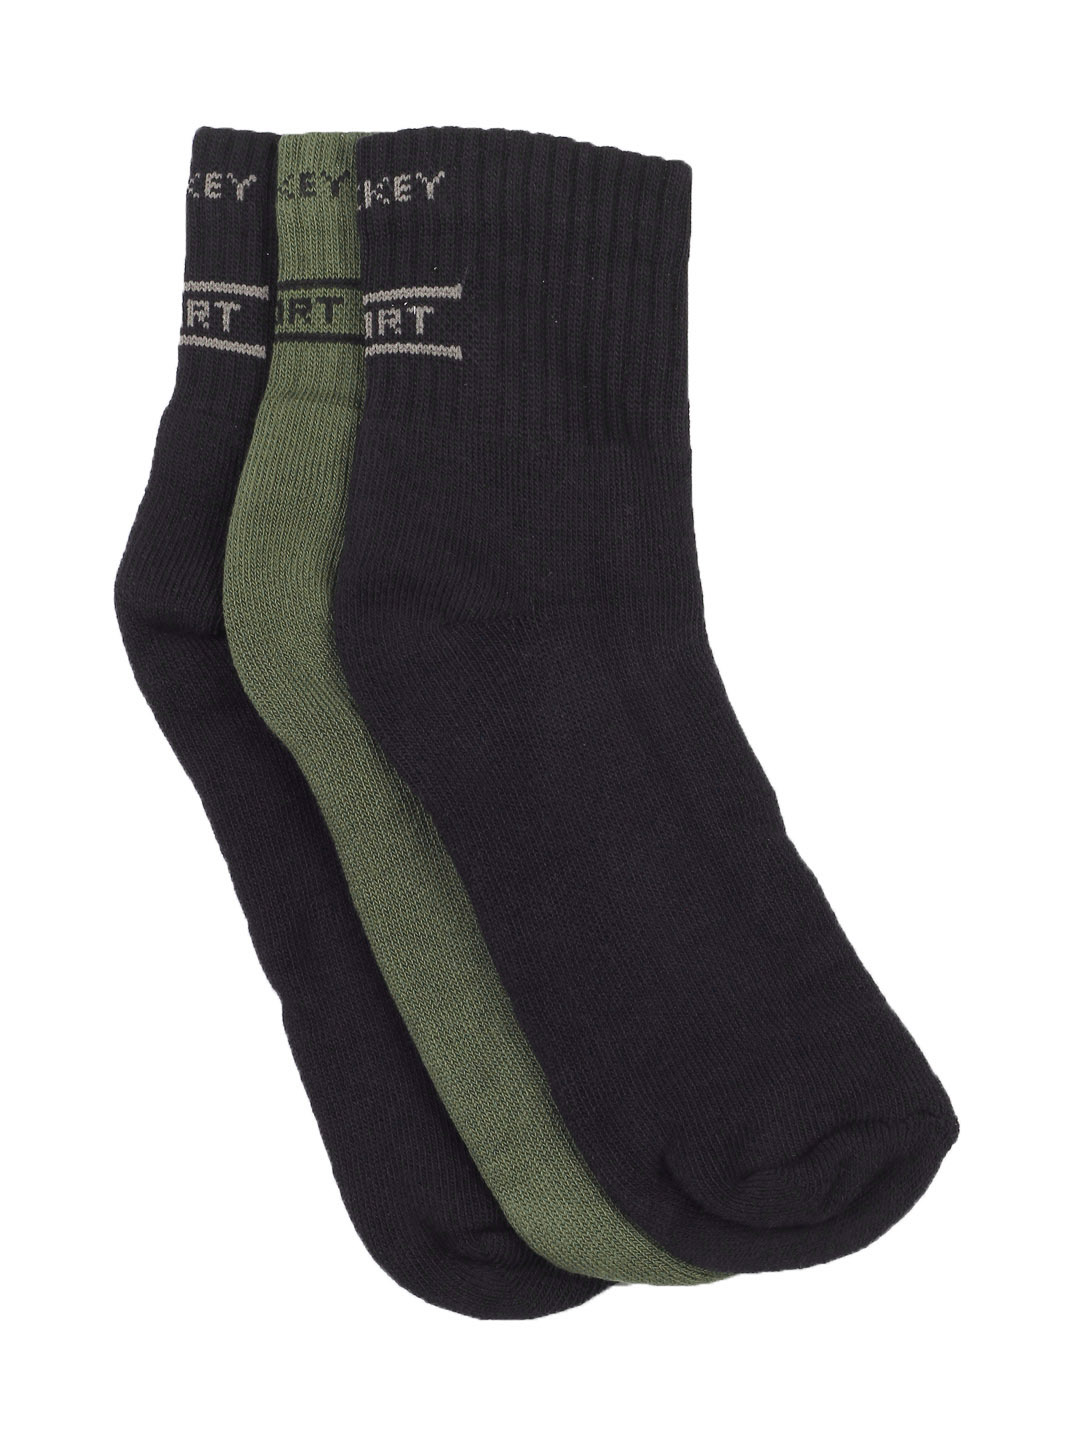 Jockey Men Pack of 3 Socks